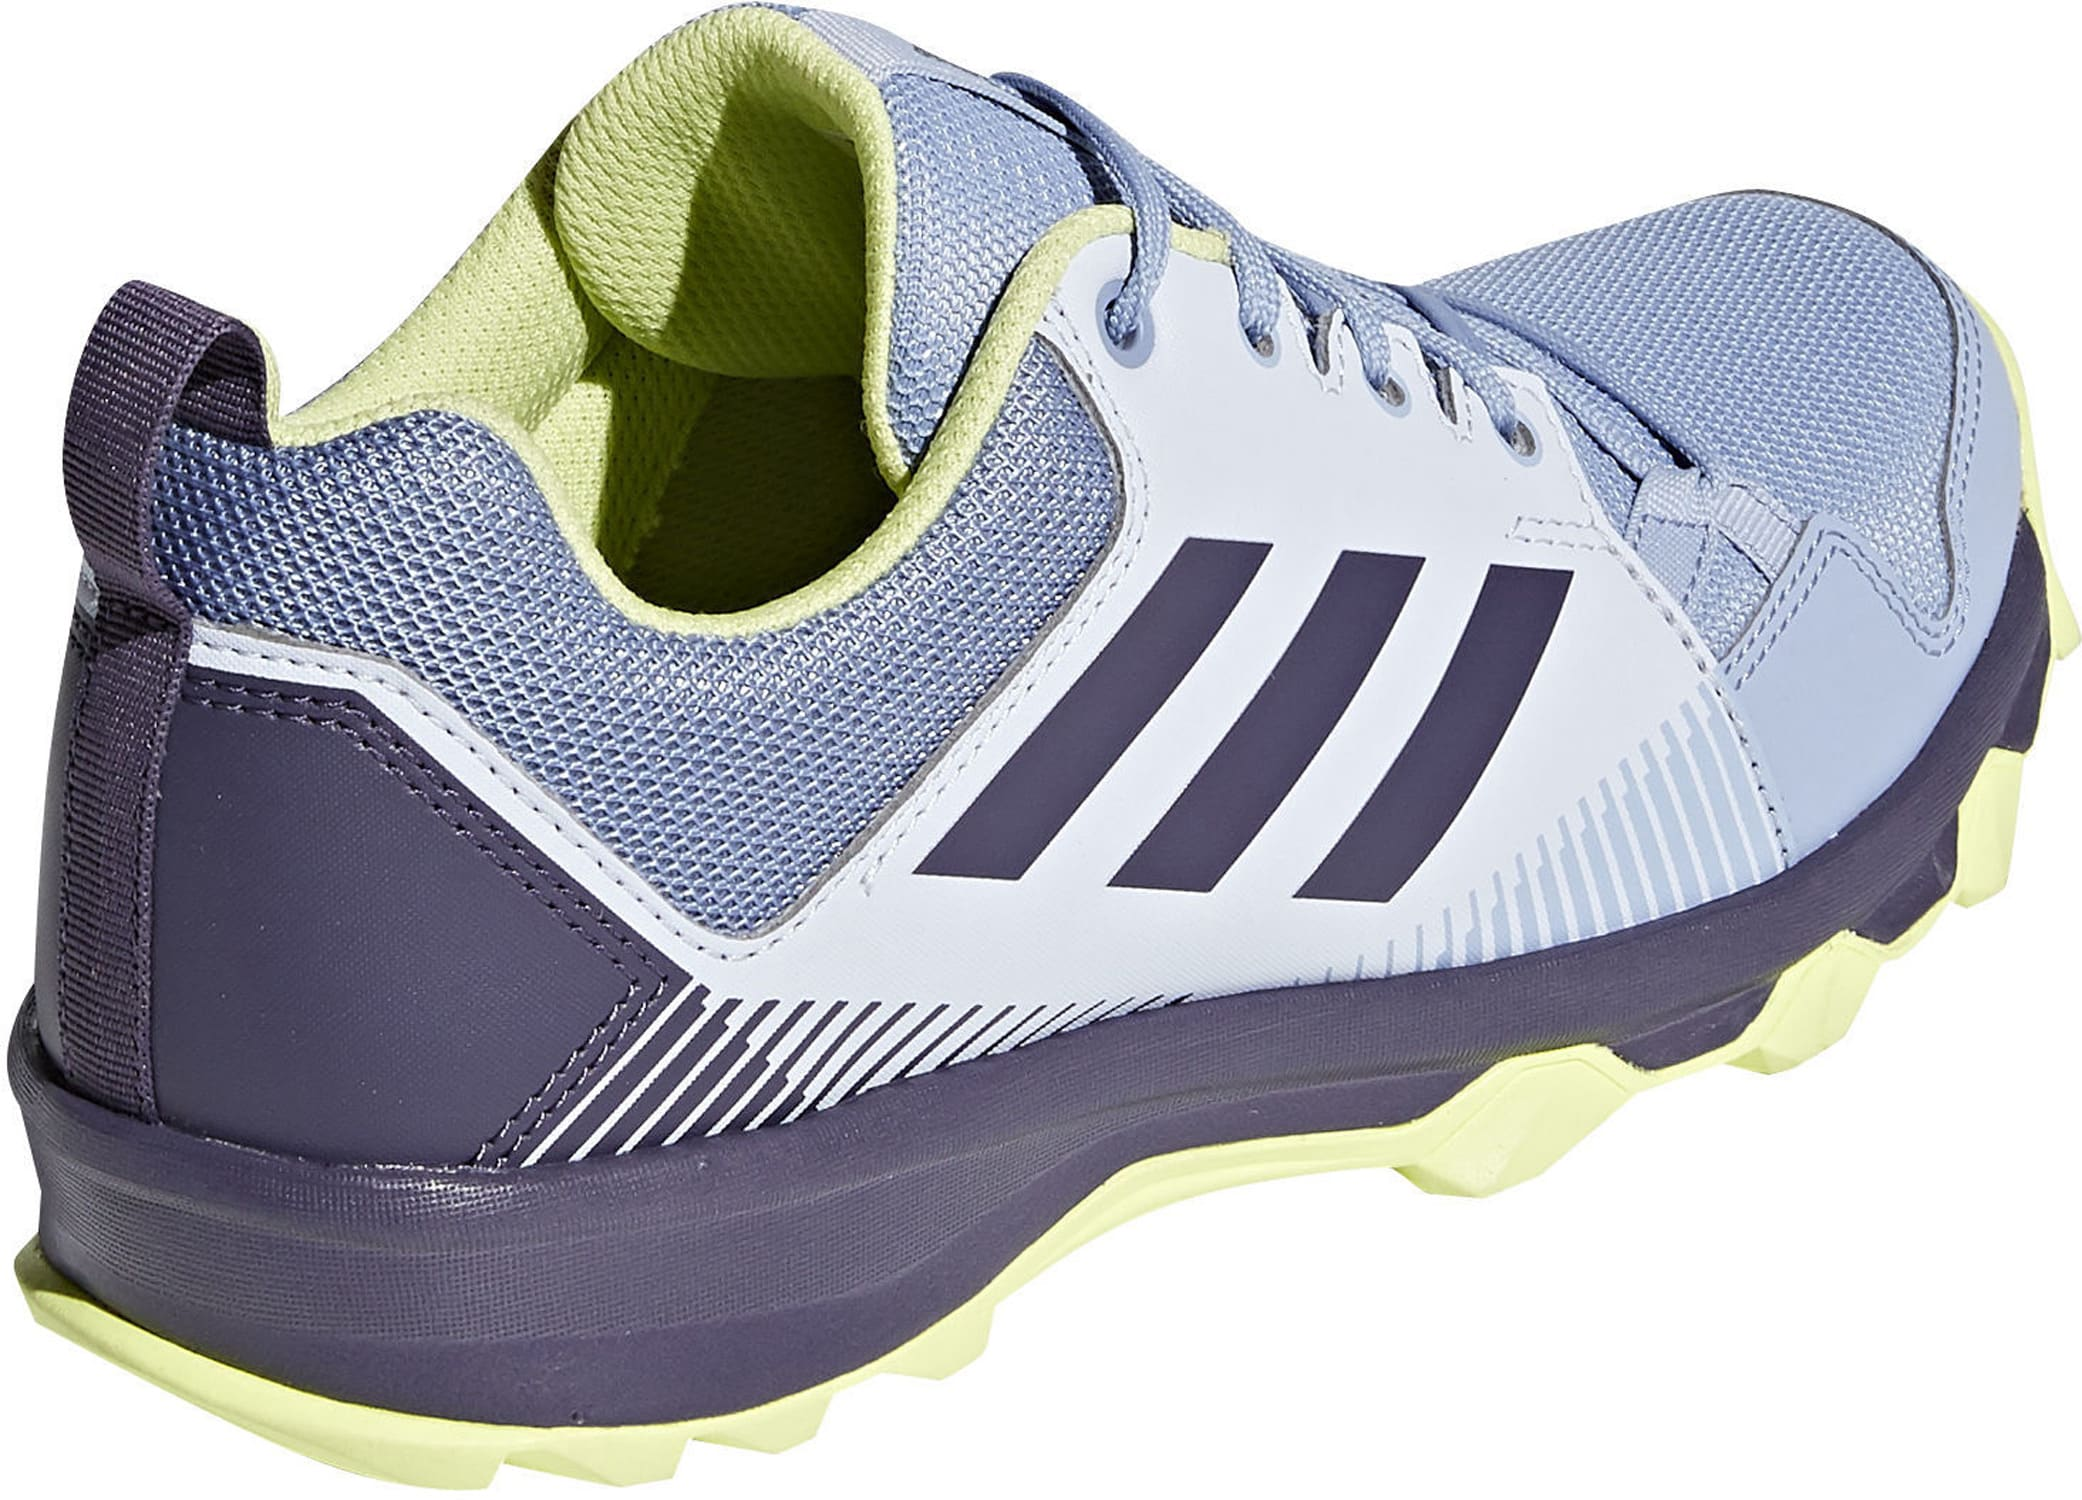 4dce7208a387e7 Adidas Terrex Tracerocker Trail Running Shoes - thumbnail 3